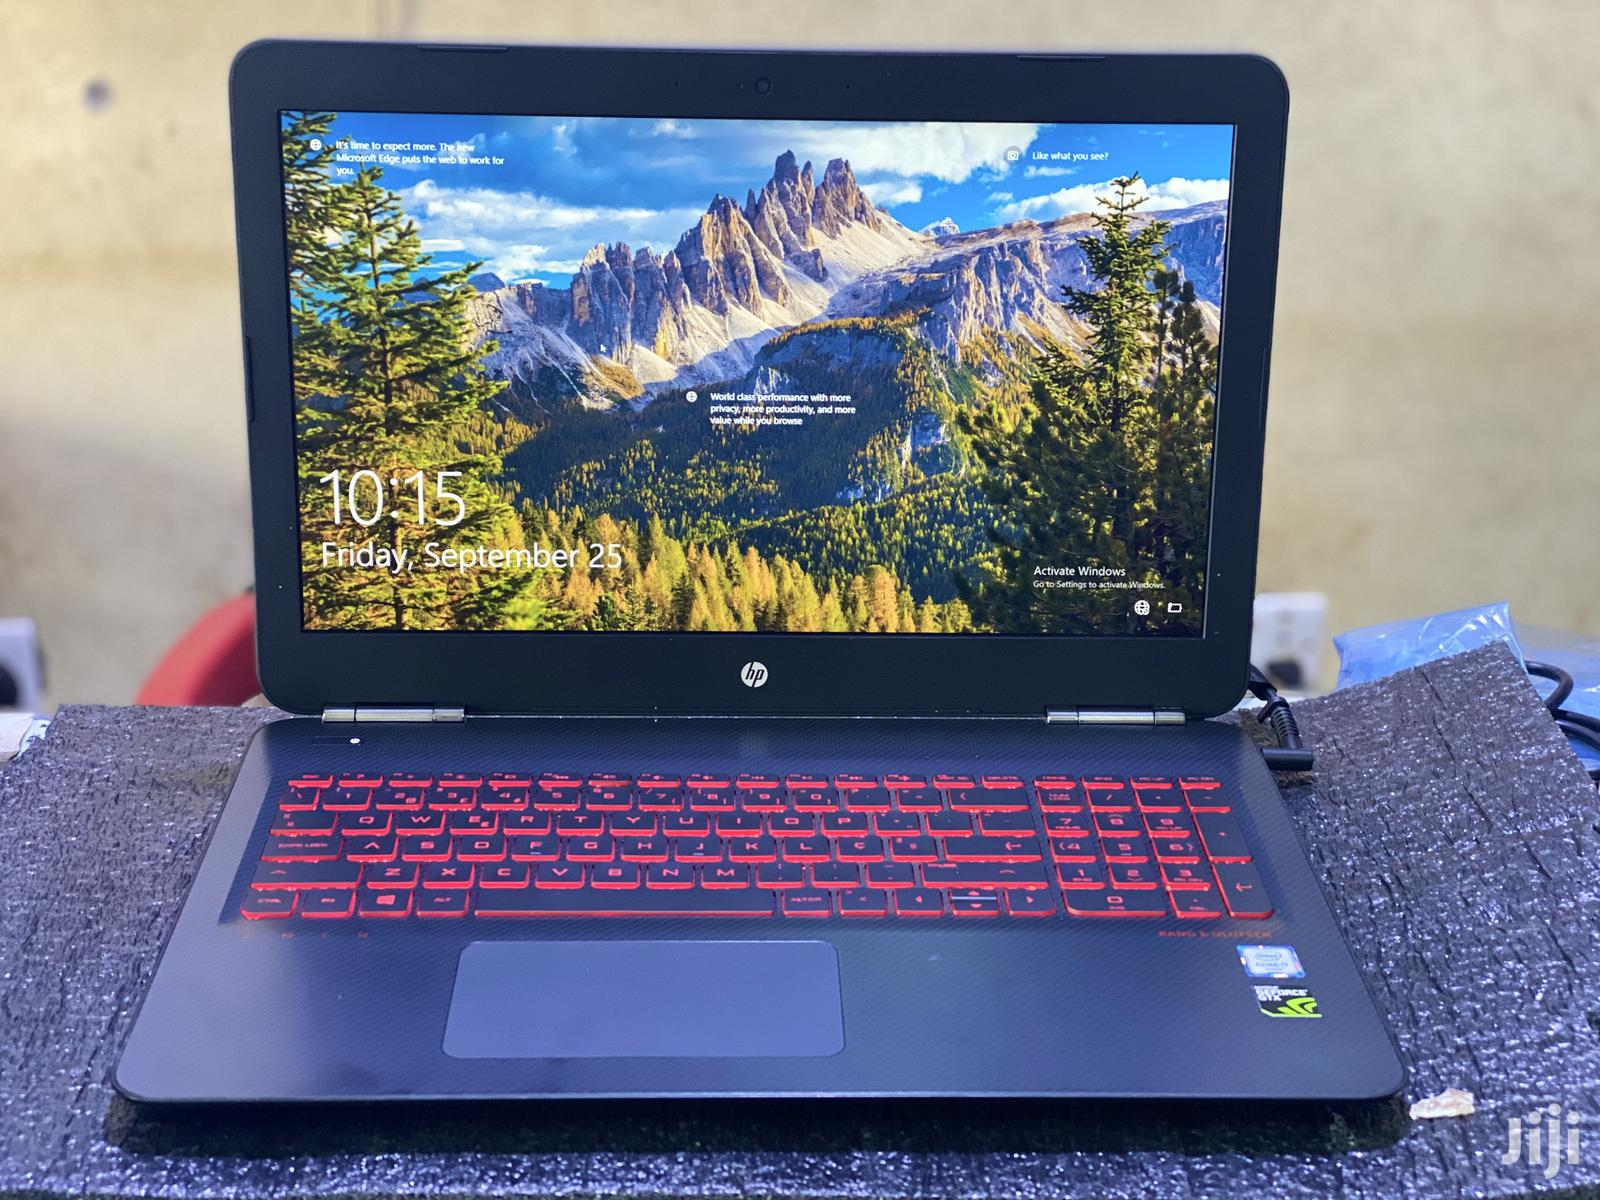 New Laptop HP Omen 15 16GB Intel Core i7 SSD 128GB   Laptops & Computers for sale in Madina, Greater Accra, Ghana